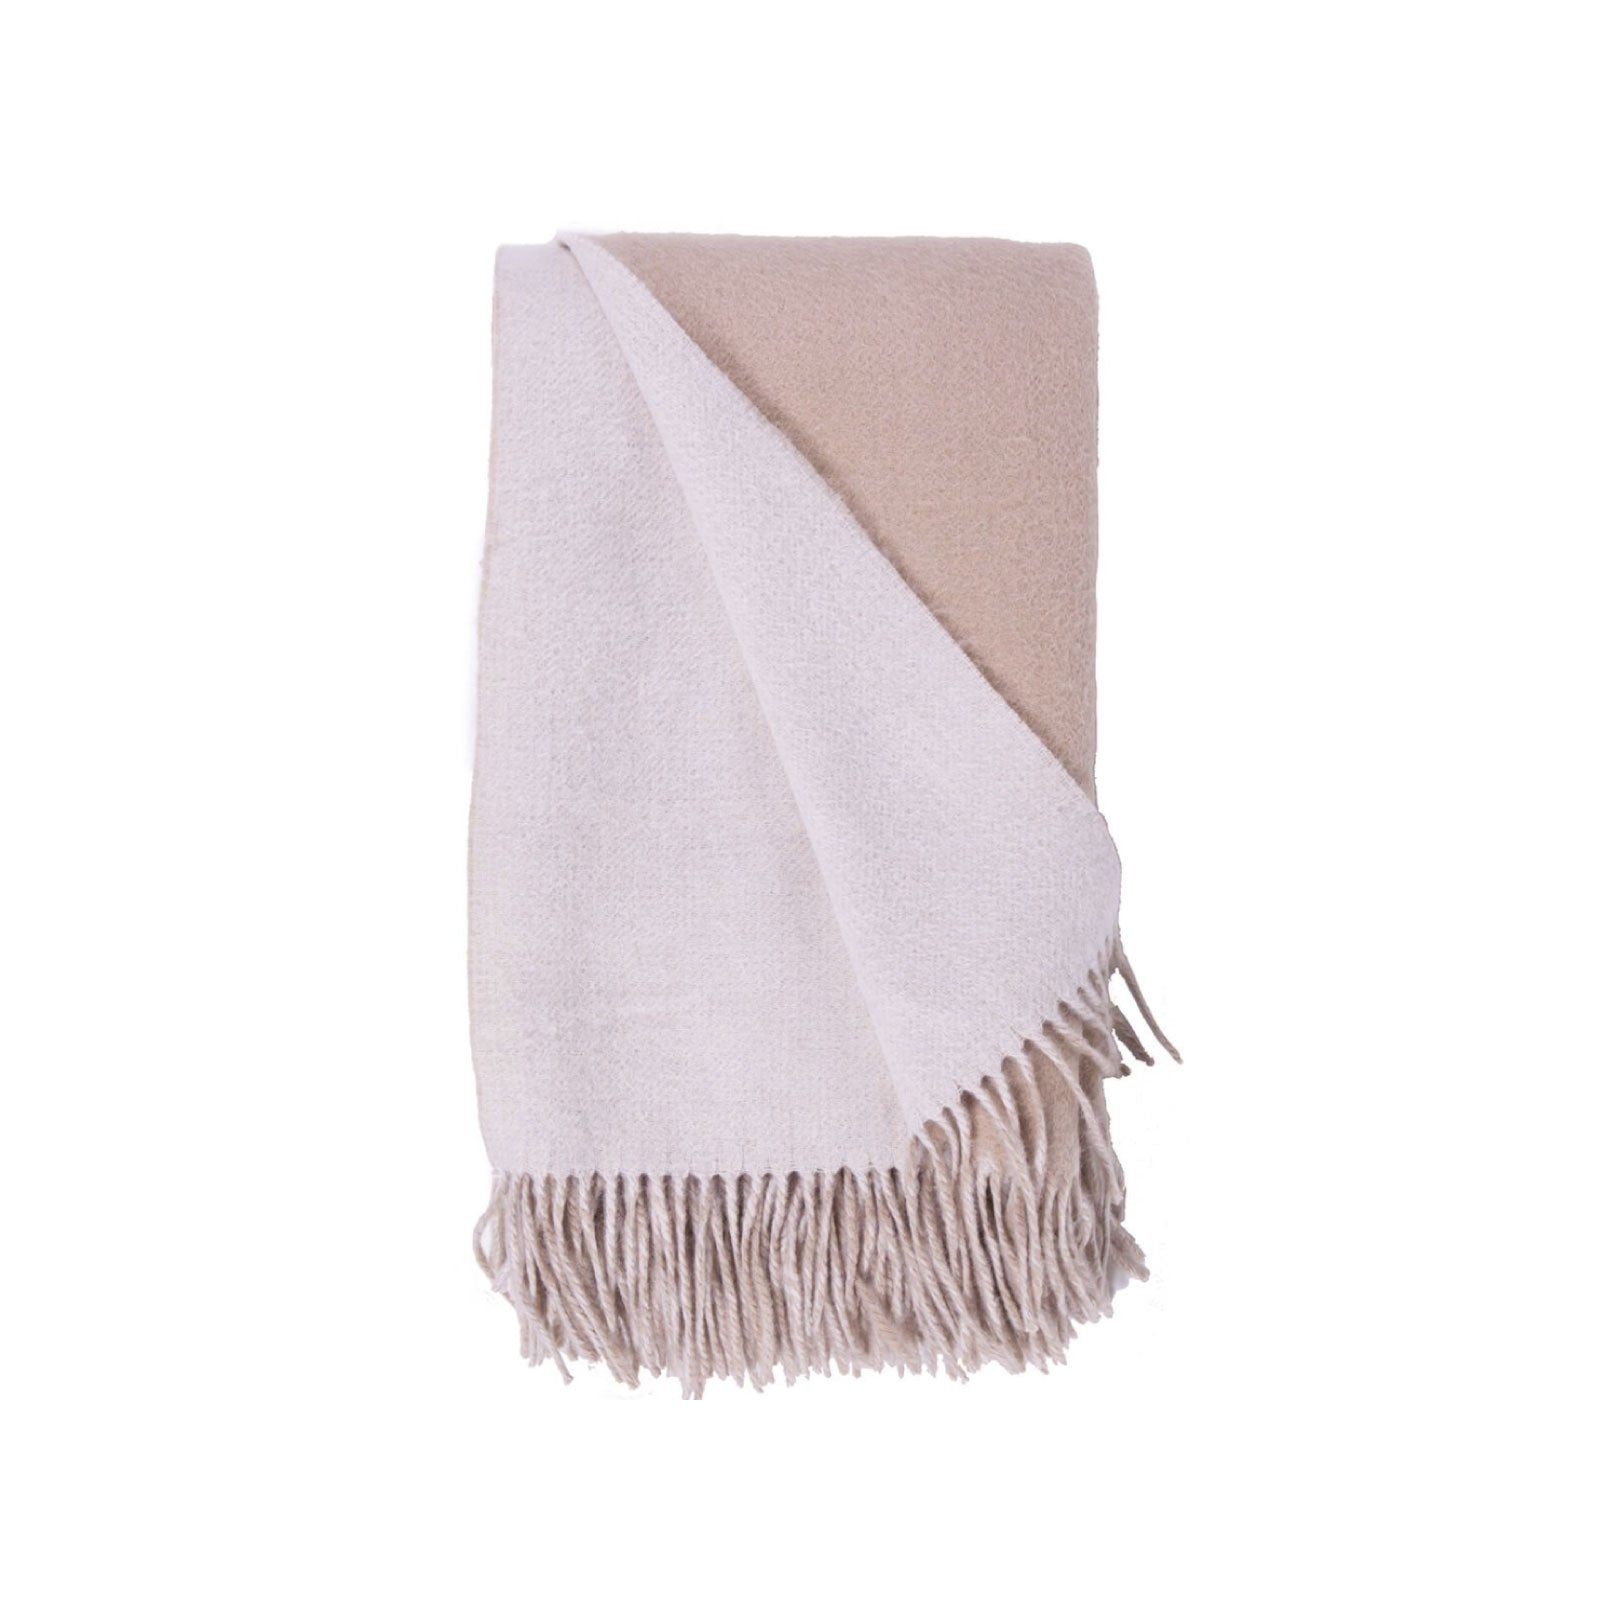 Wool and Cashmere Woven Throw in Cream & Taupe